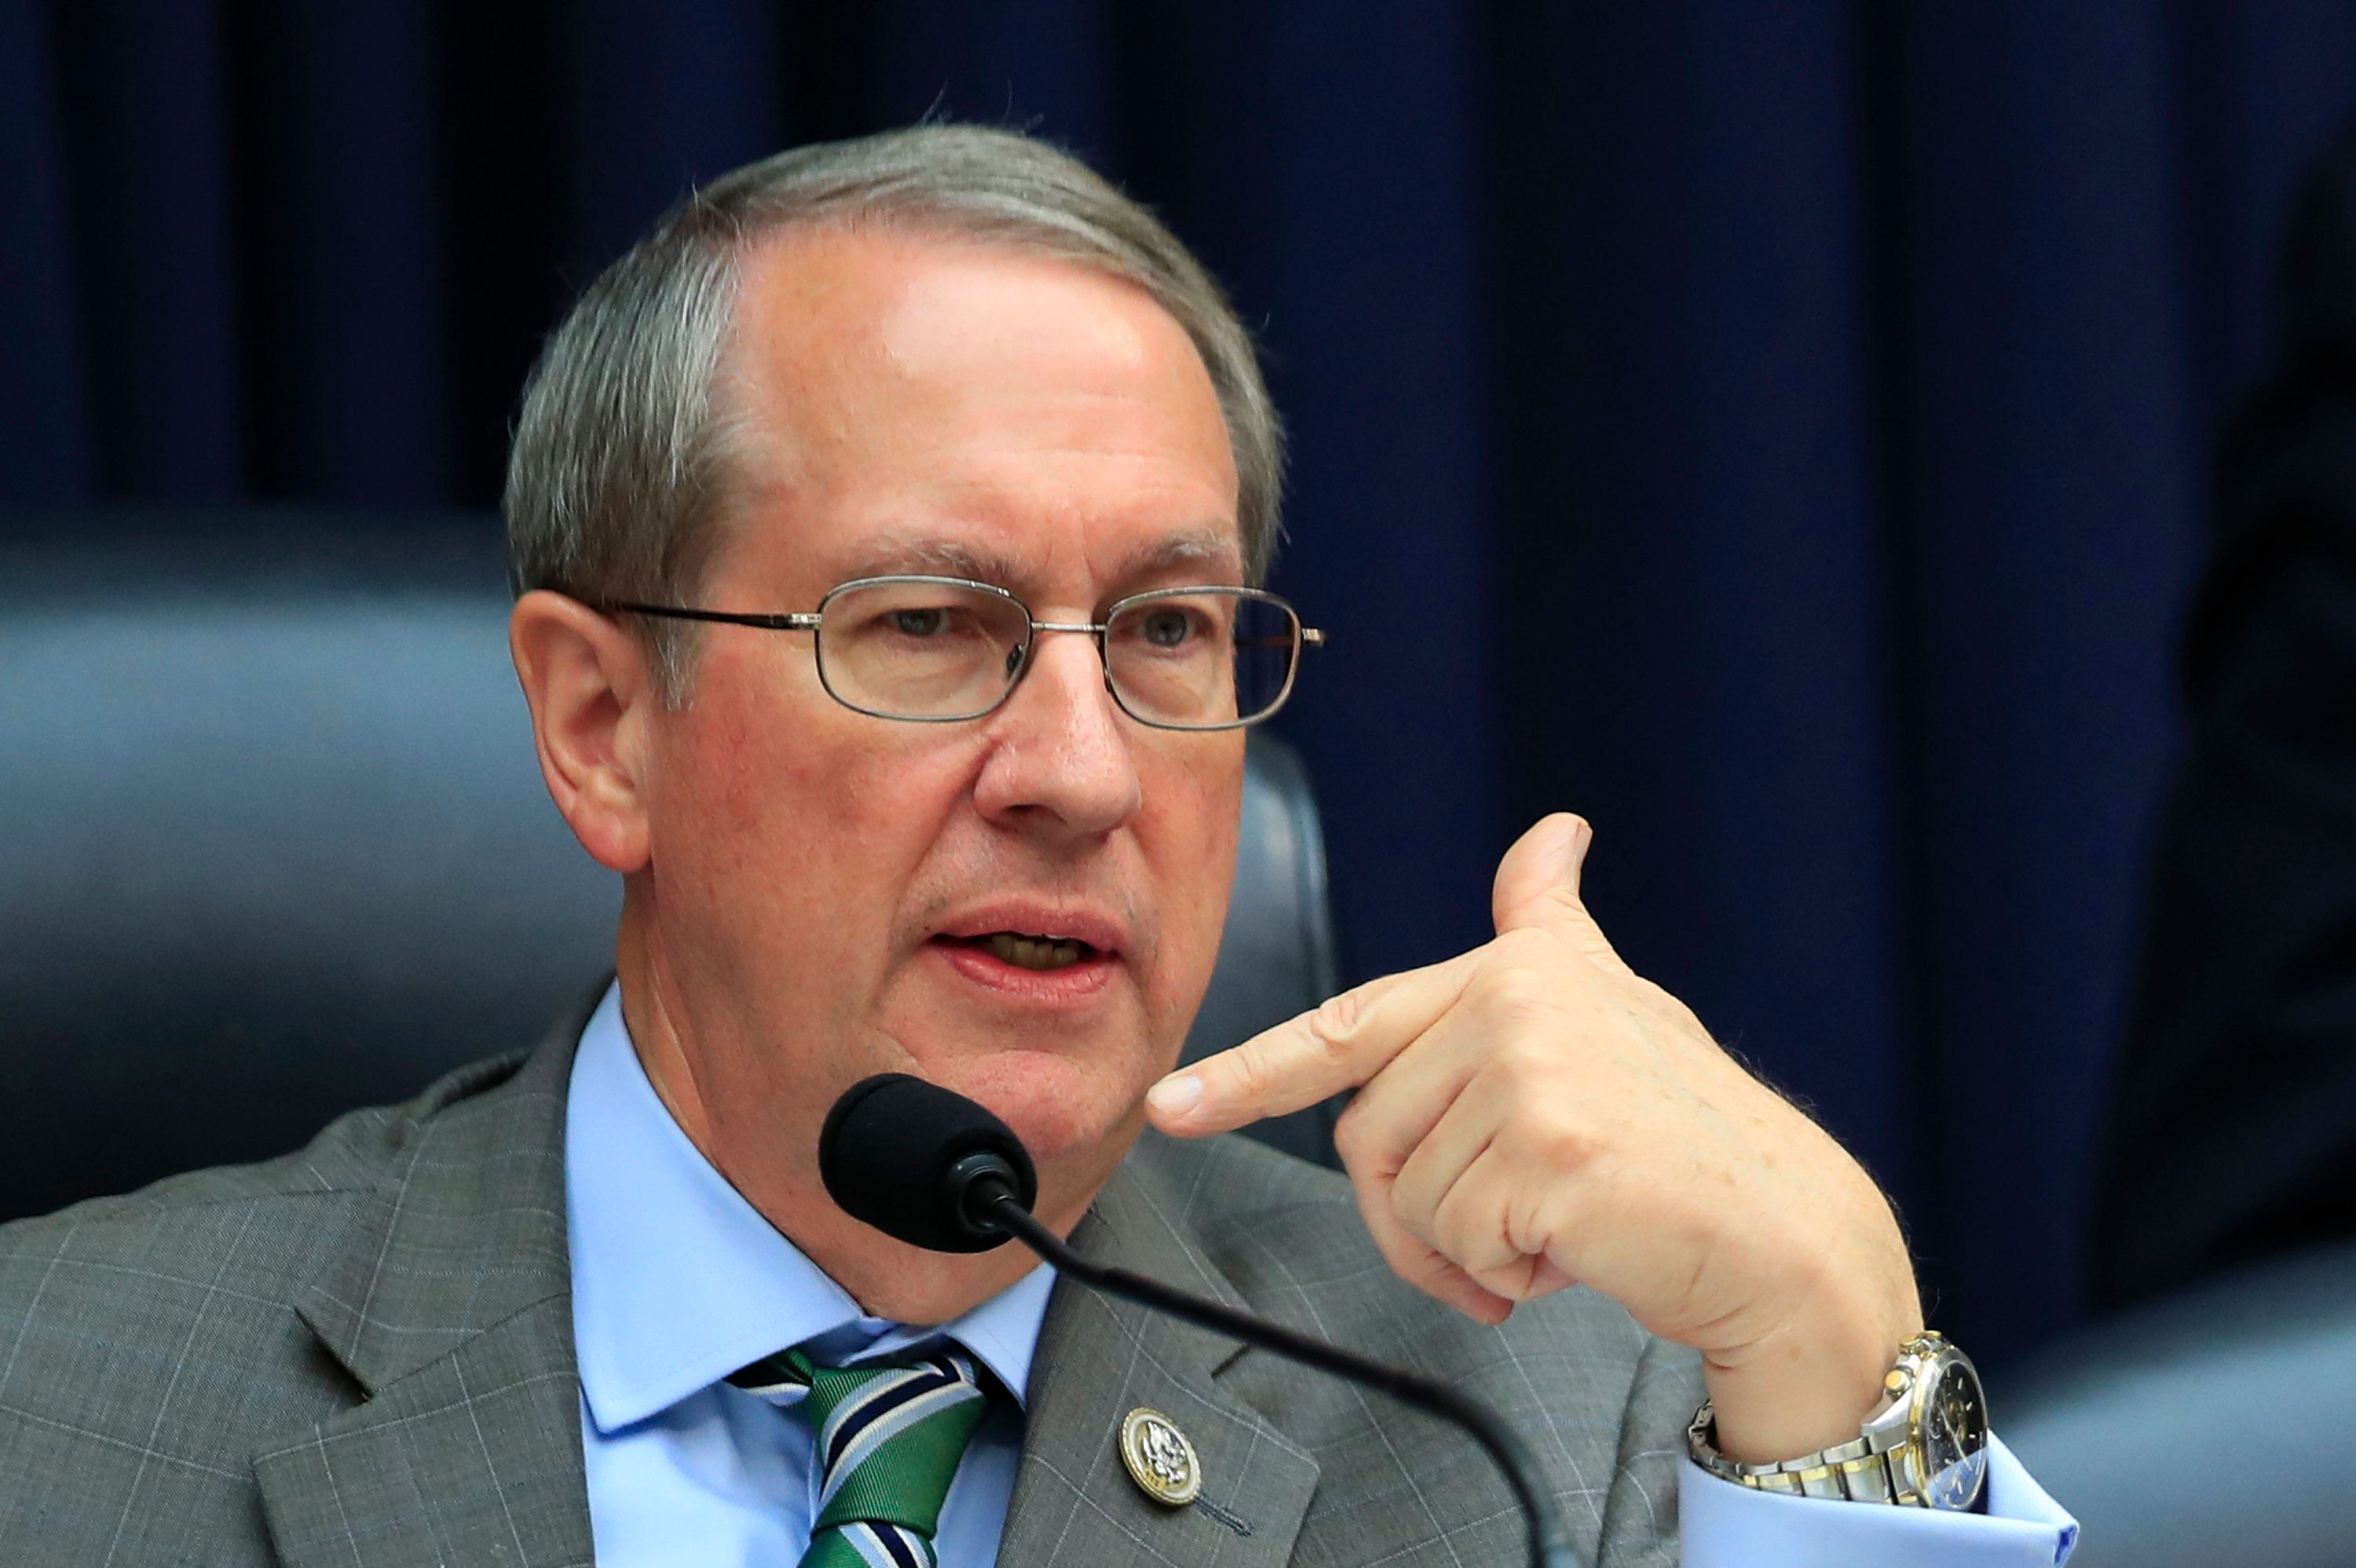 For his final act in Congress, retiring Rep. Bob Goodlatte (R-Va.) is holding up a bill that would help abused Native women.